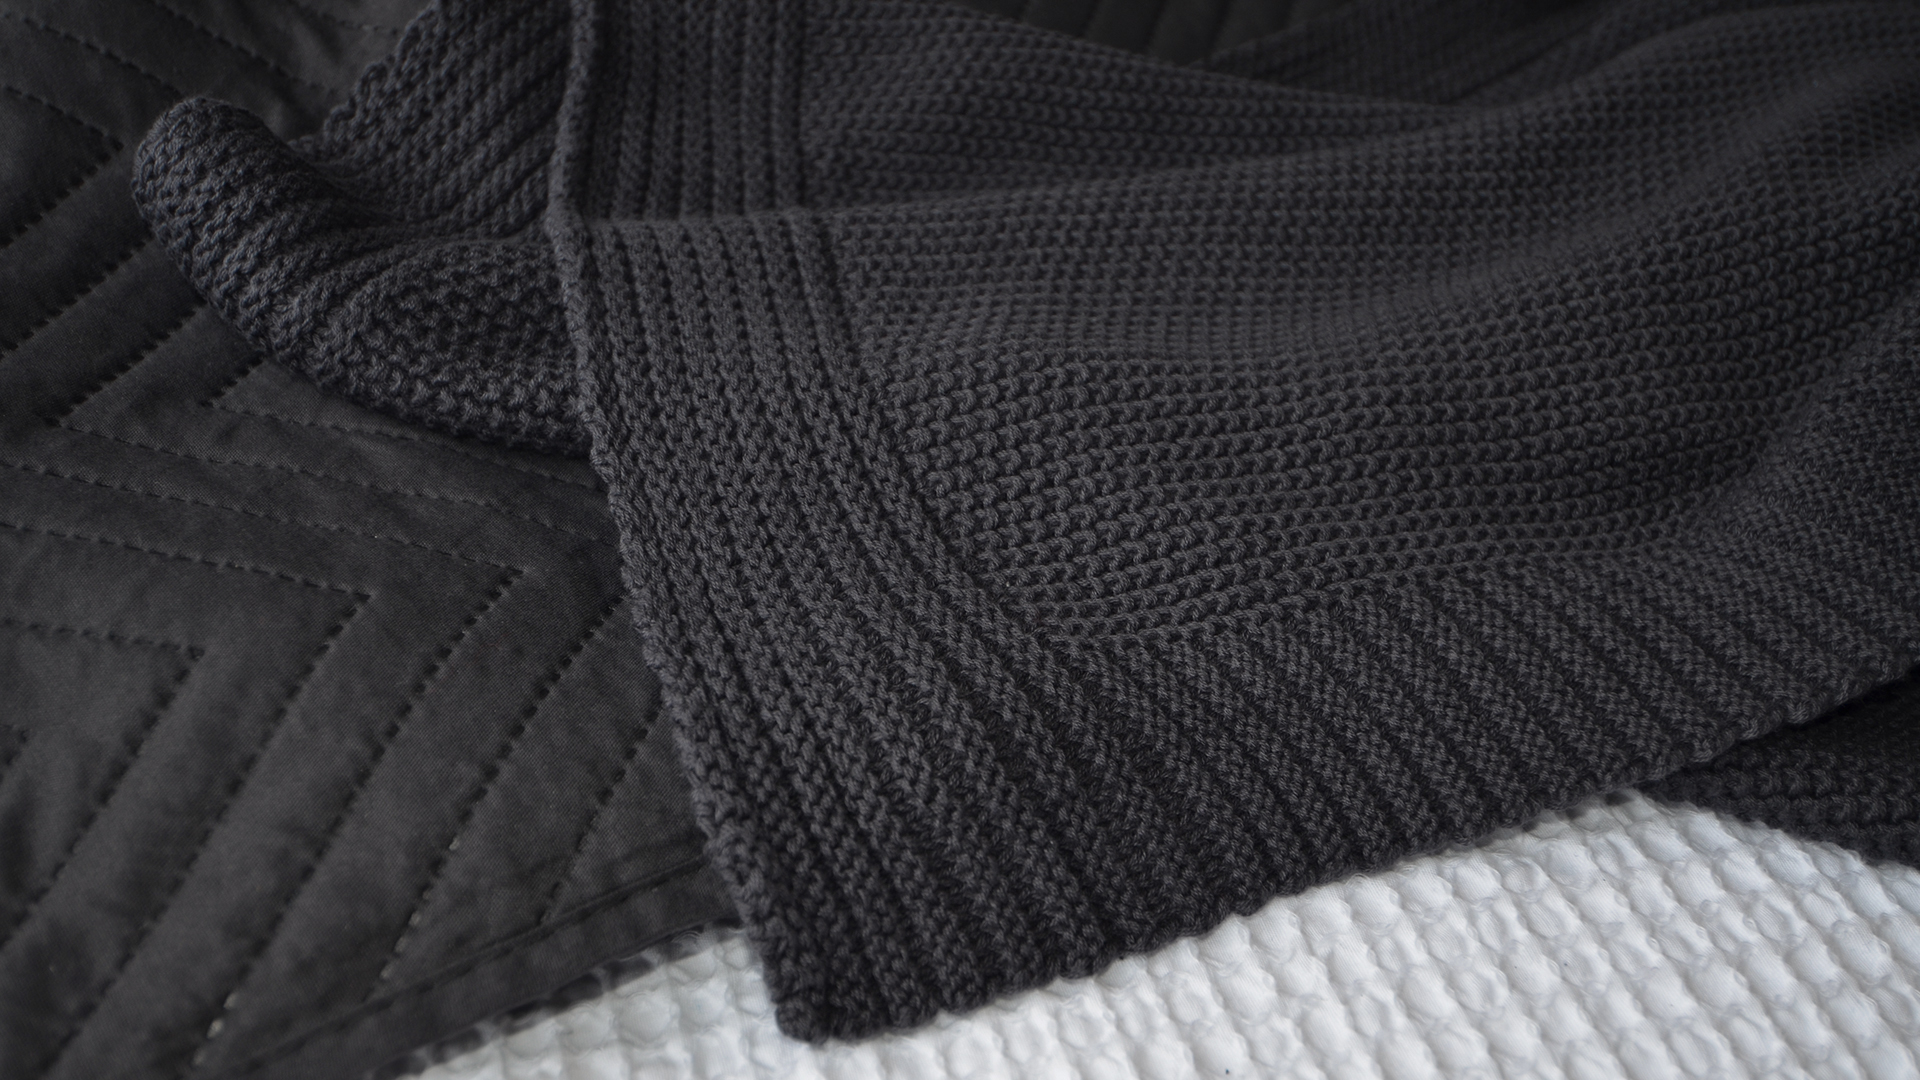 black bedspread and black knitted throw